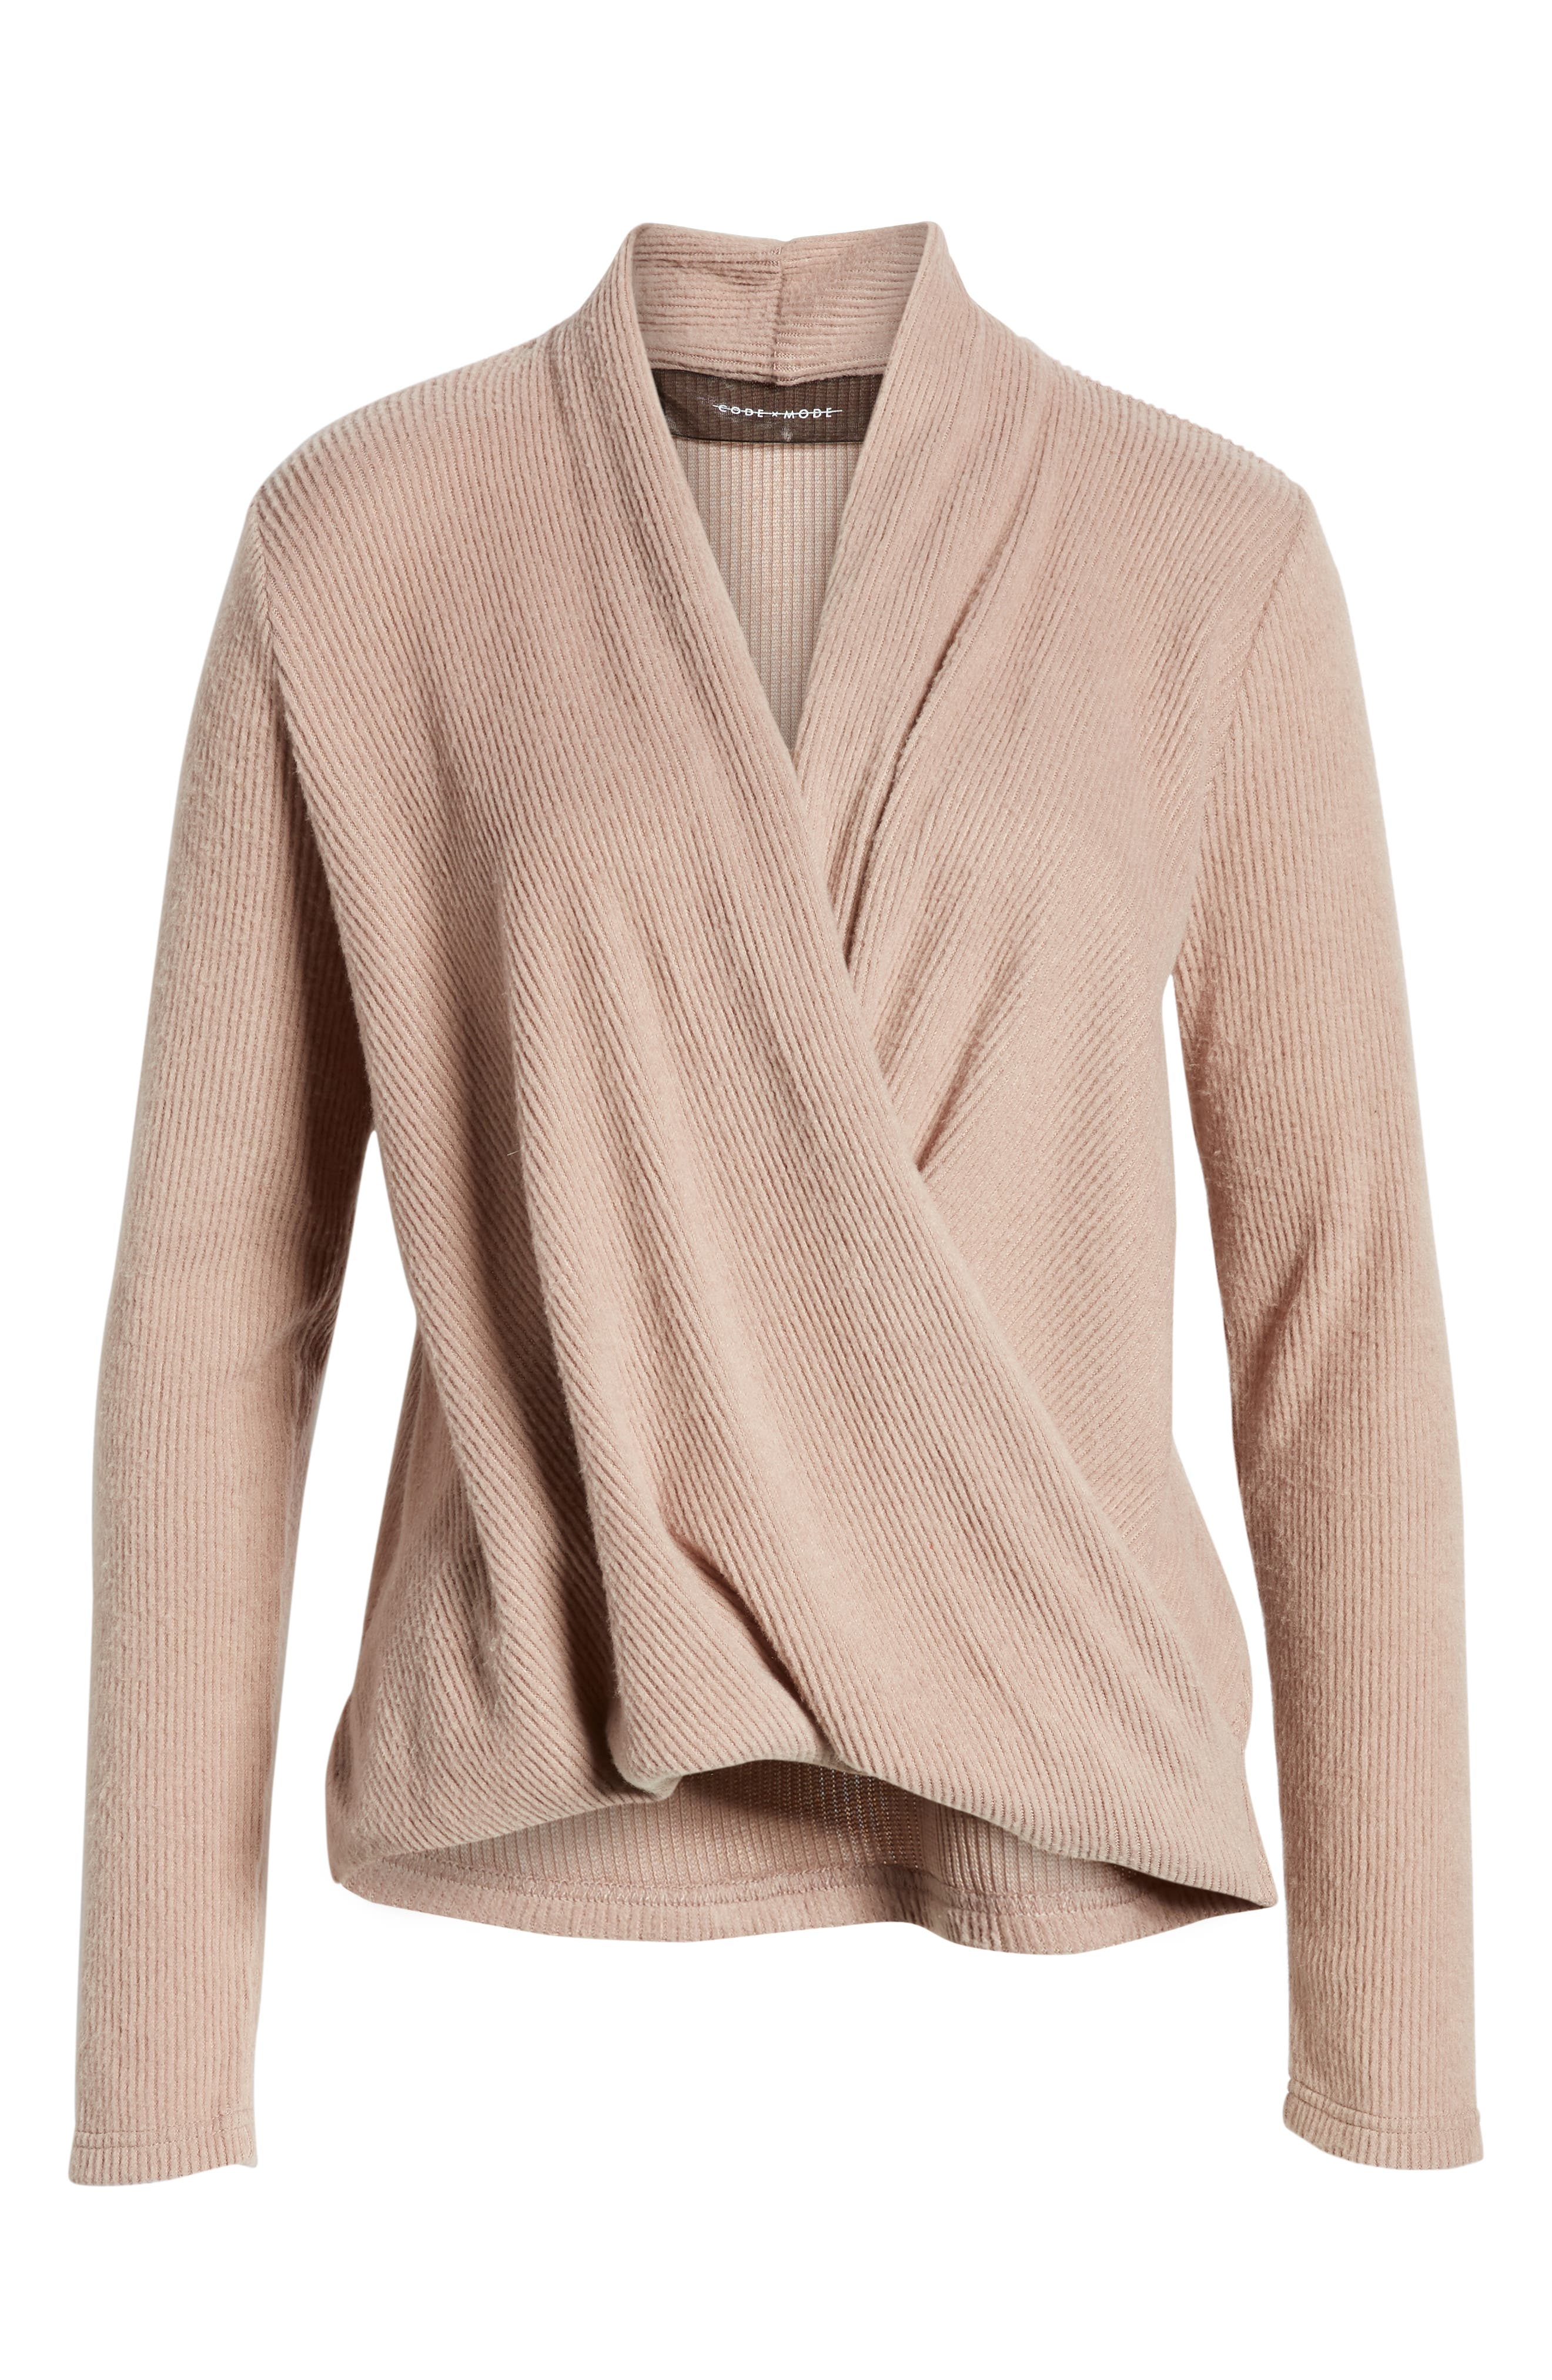 CODEXMODE, Faux Wrap Sweater, Alternate thumbnail 6, color, 250